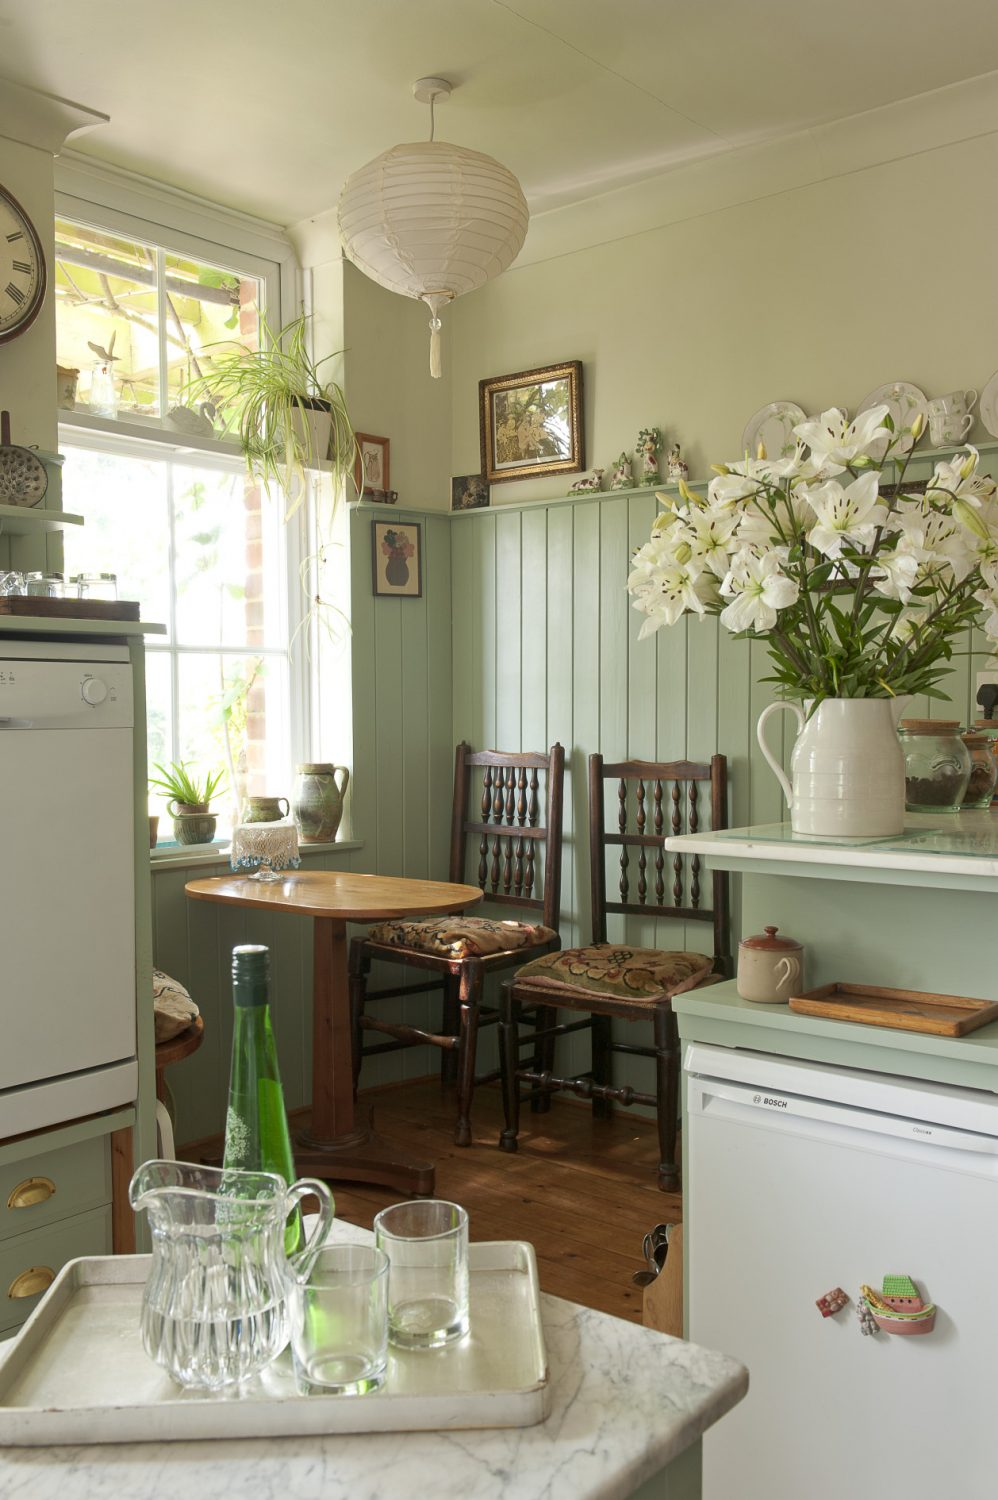 A little alcove breakfast table for two is nestled in one corner of the modest-sized shaker-style kitchen